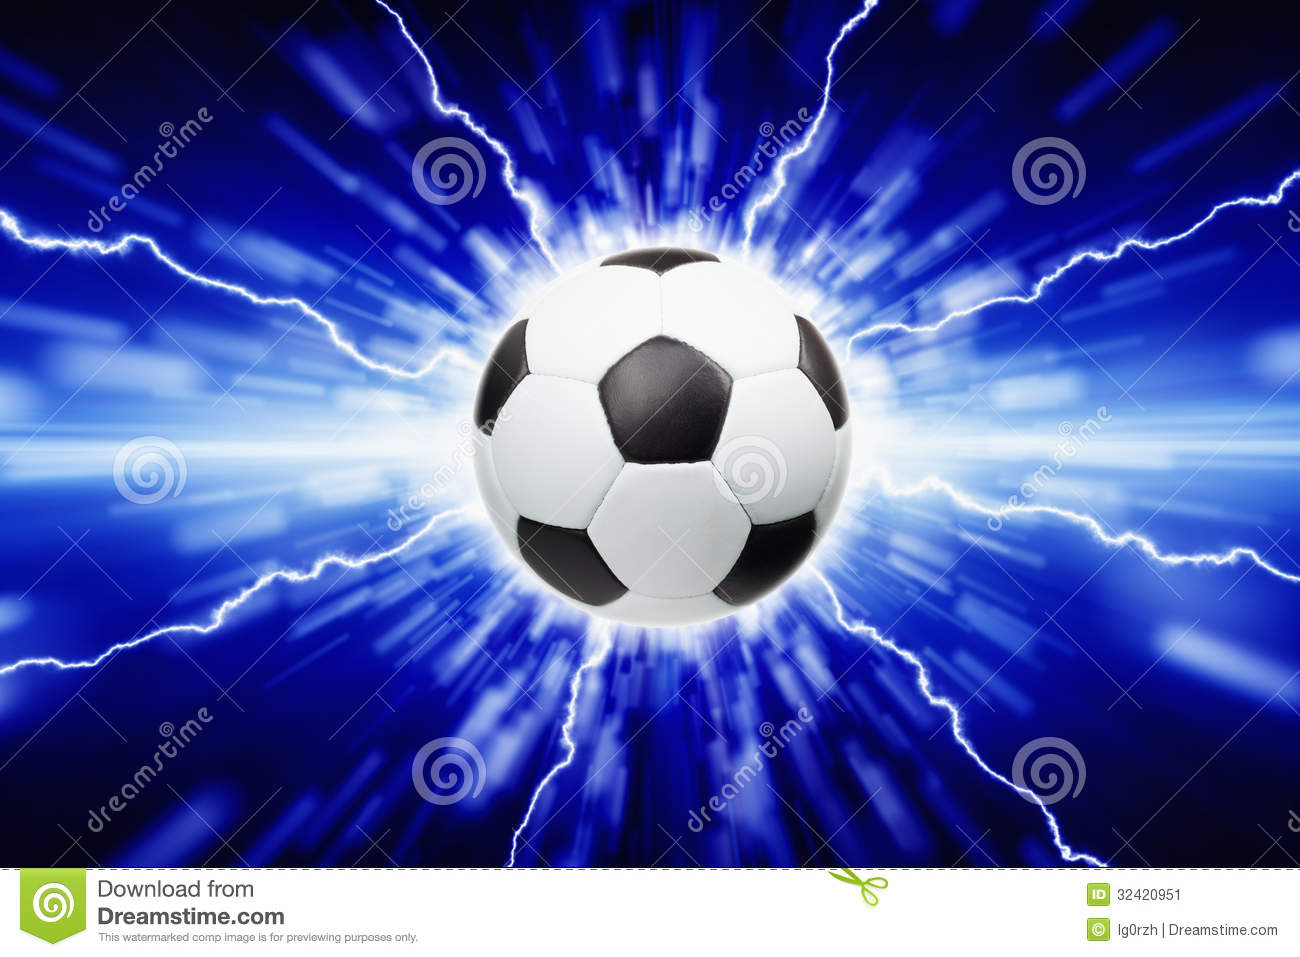 Amazing Soccer Wallpapers: Cool Soccer Backgrounds